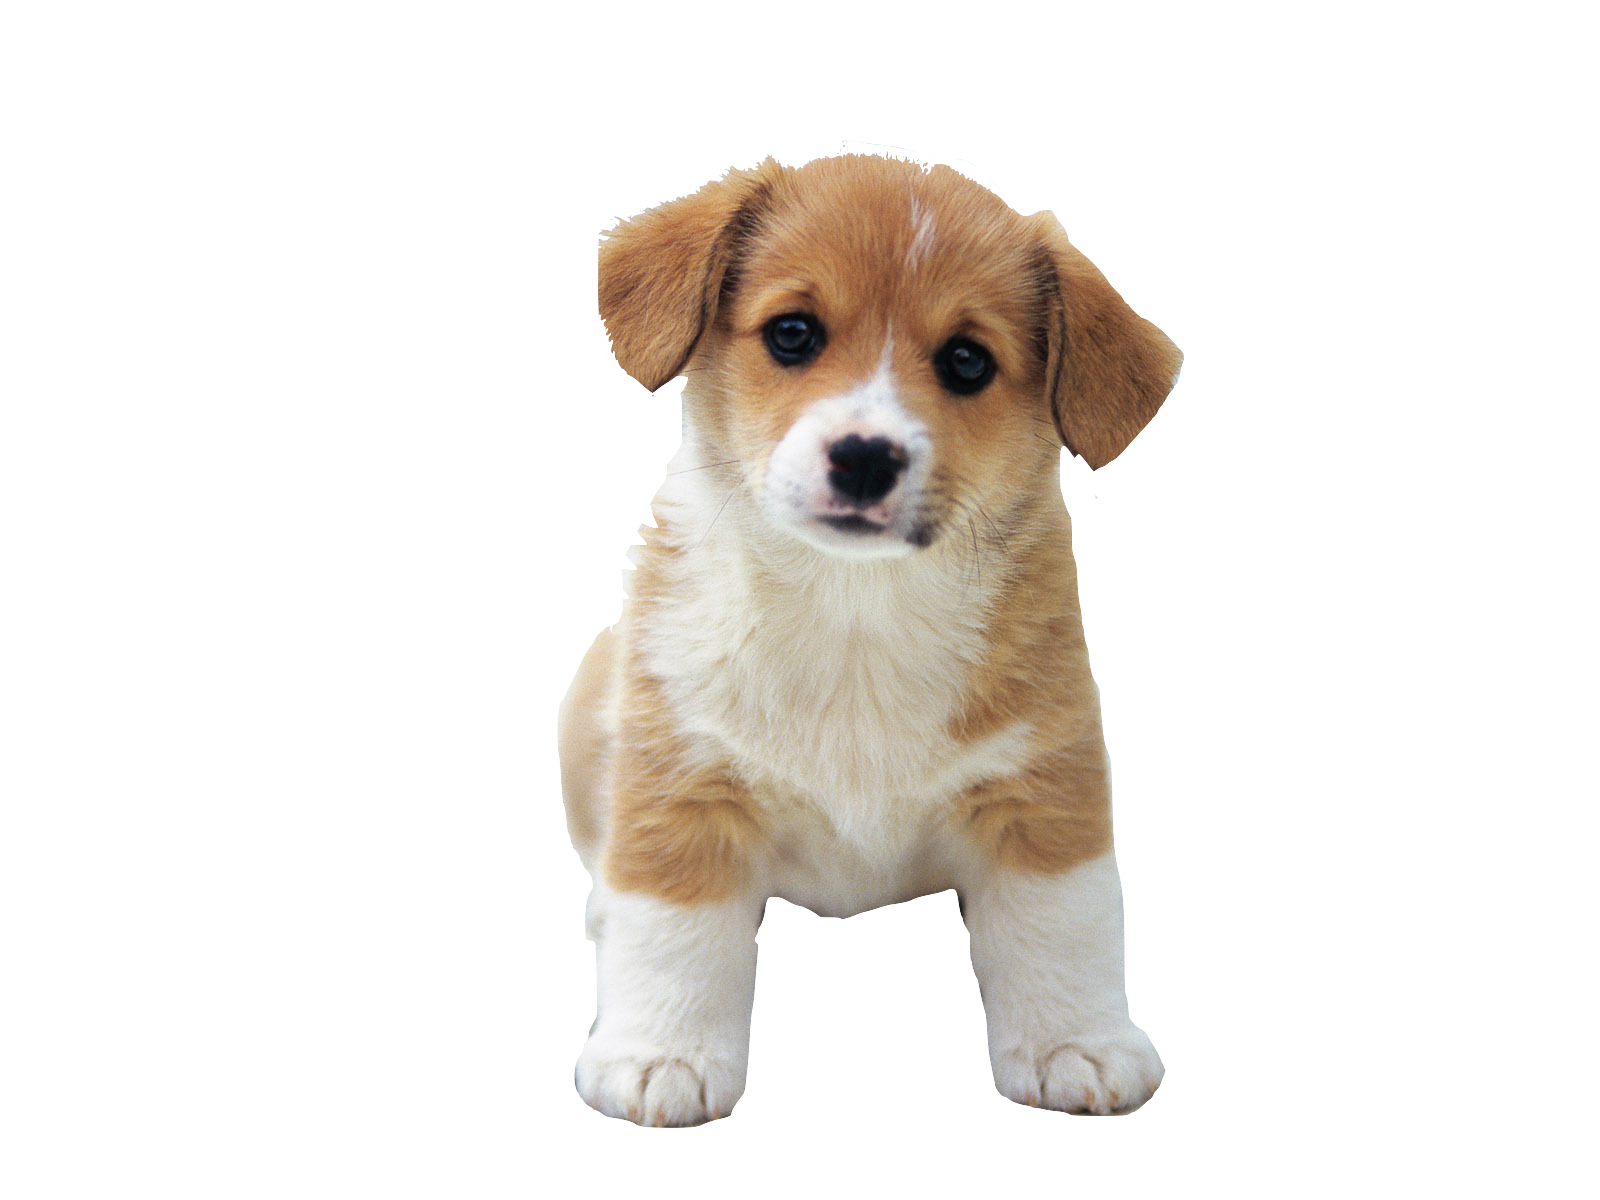 So Cute Puppies | Free Images at Clker.com - vector clip art online ...